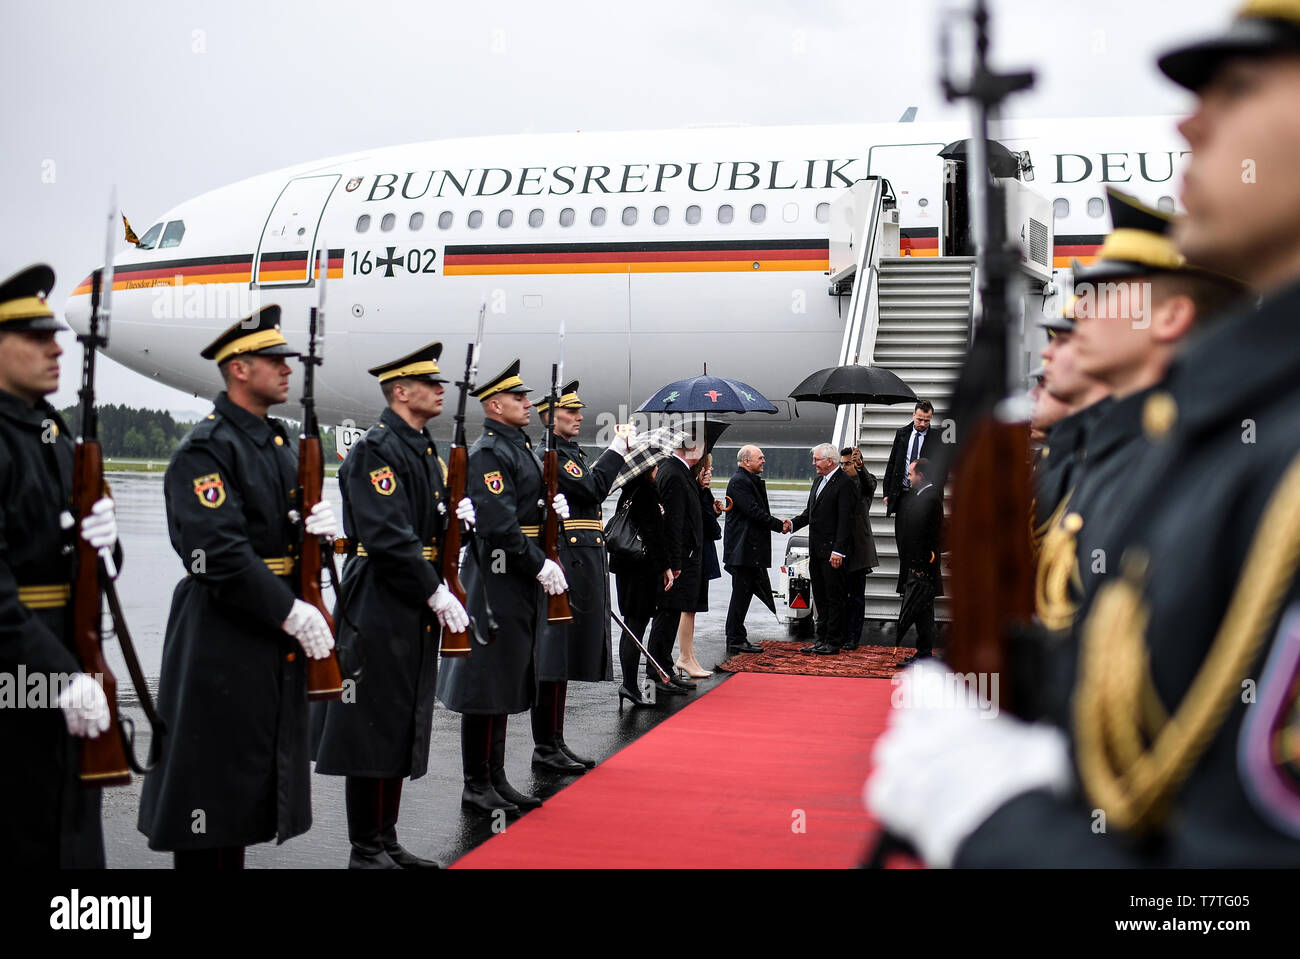 Laibach, Slovenia. 06th Apr, 2019. Federal President Frank-Walter Steinmeier is welcomed at the Jo·e-Puc·nik airport in Ljubljana by the German Ambassador to Slovenia, Klaus Riedel. The Federal President is on a two-day trip to Slovenia. Credit: Britta Pedersen/dpa-Zentralbild/dpa/Alamy Live News Stock Photo